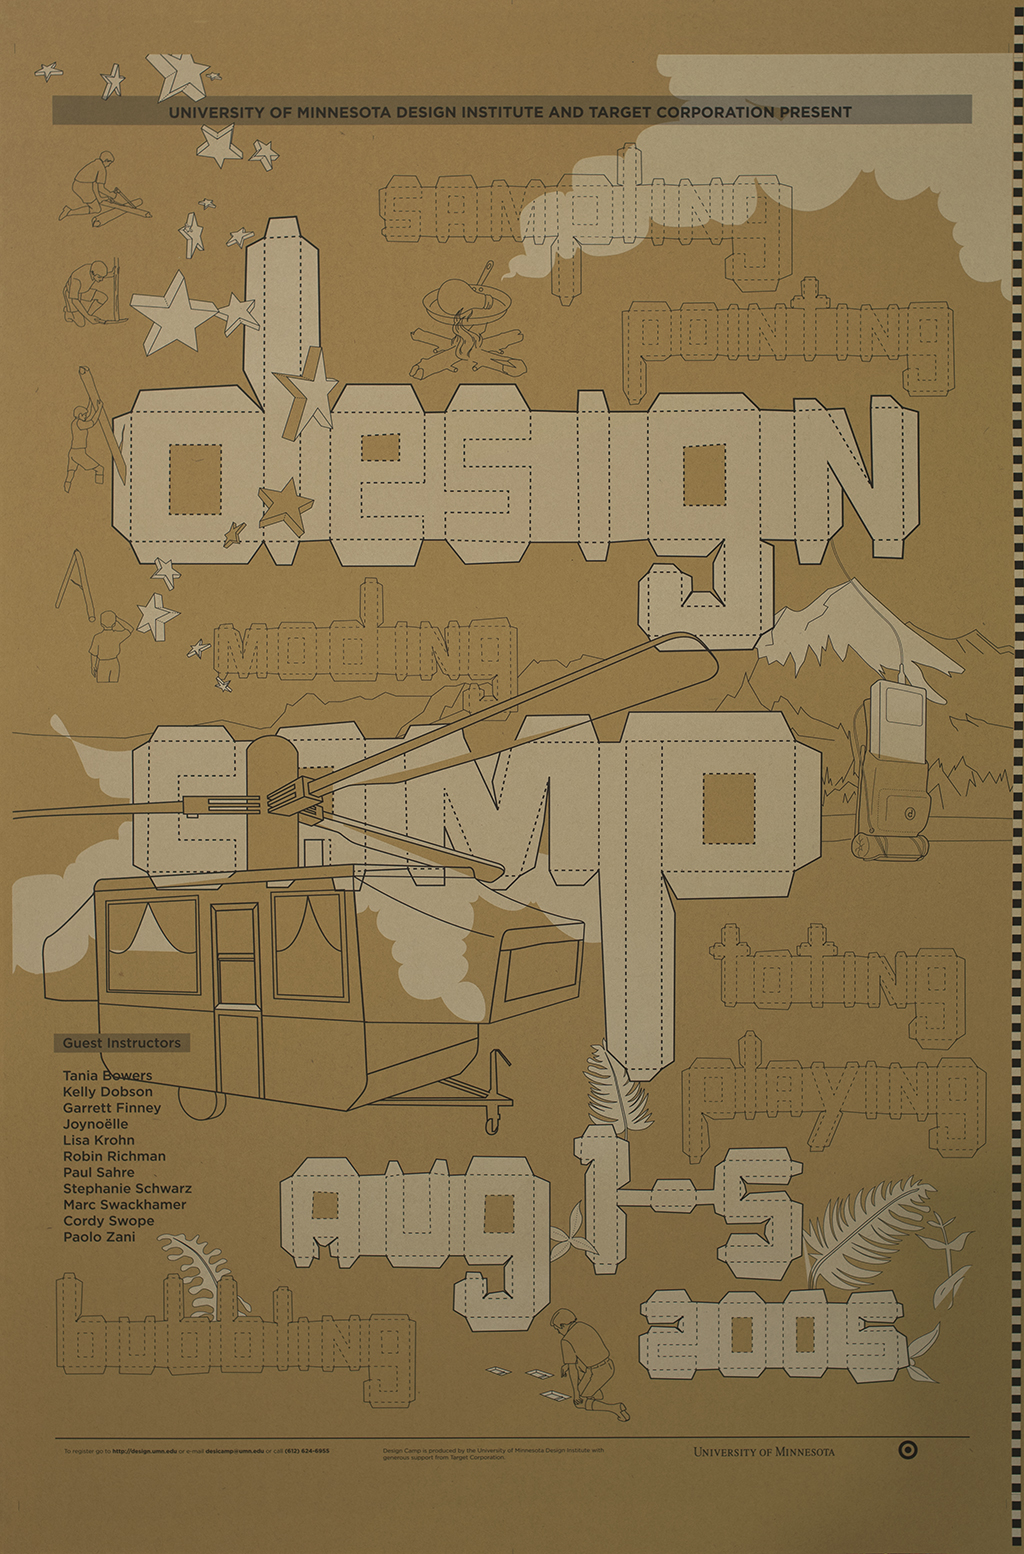 Brown poster with line drawings of strange camping-related items (a camper with helicopter rotors, a skillet on a campfire cooking a lightbulb, a giant iPod in a backpack).